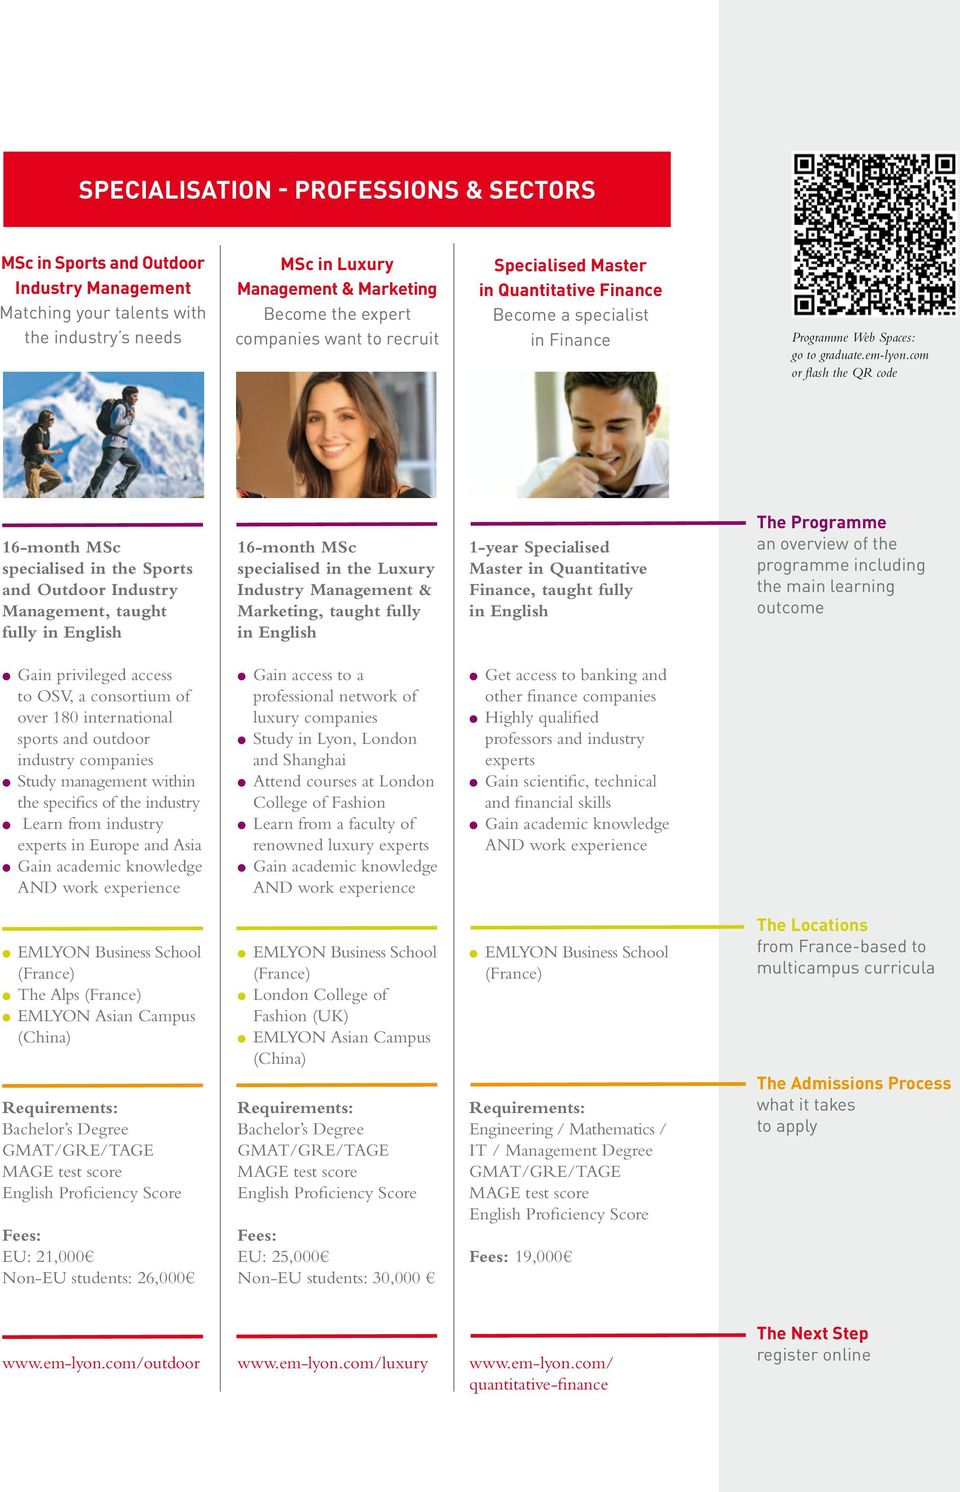 com or flash the QR code 16-month MSc specialised in the Sports and Outdoor Industry Management, taught fully in English 16-month MSc specialised in the Luxury Industry Management & Marketing, taught